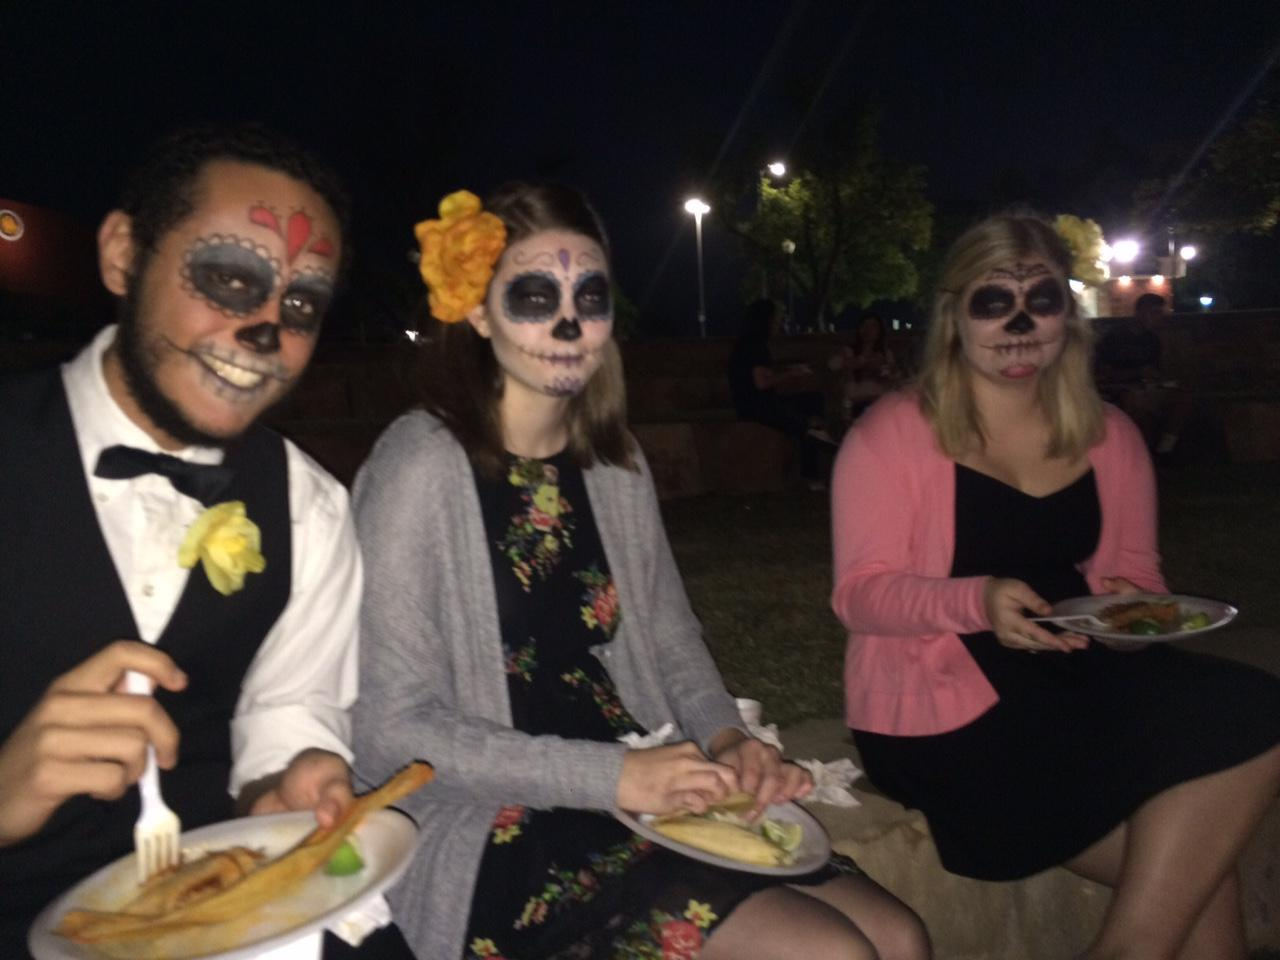 (from left to right) Chris Hernandez, Rebekah Davidson and Hannah Johnson take a taco break at the fiesta.